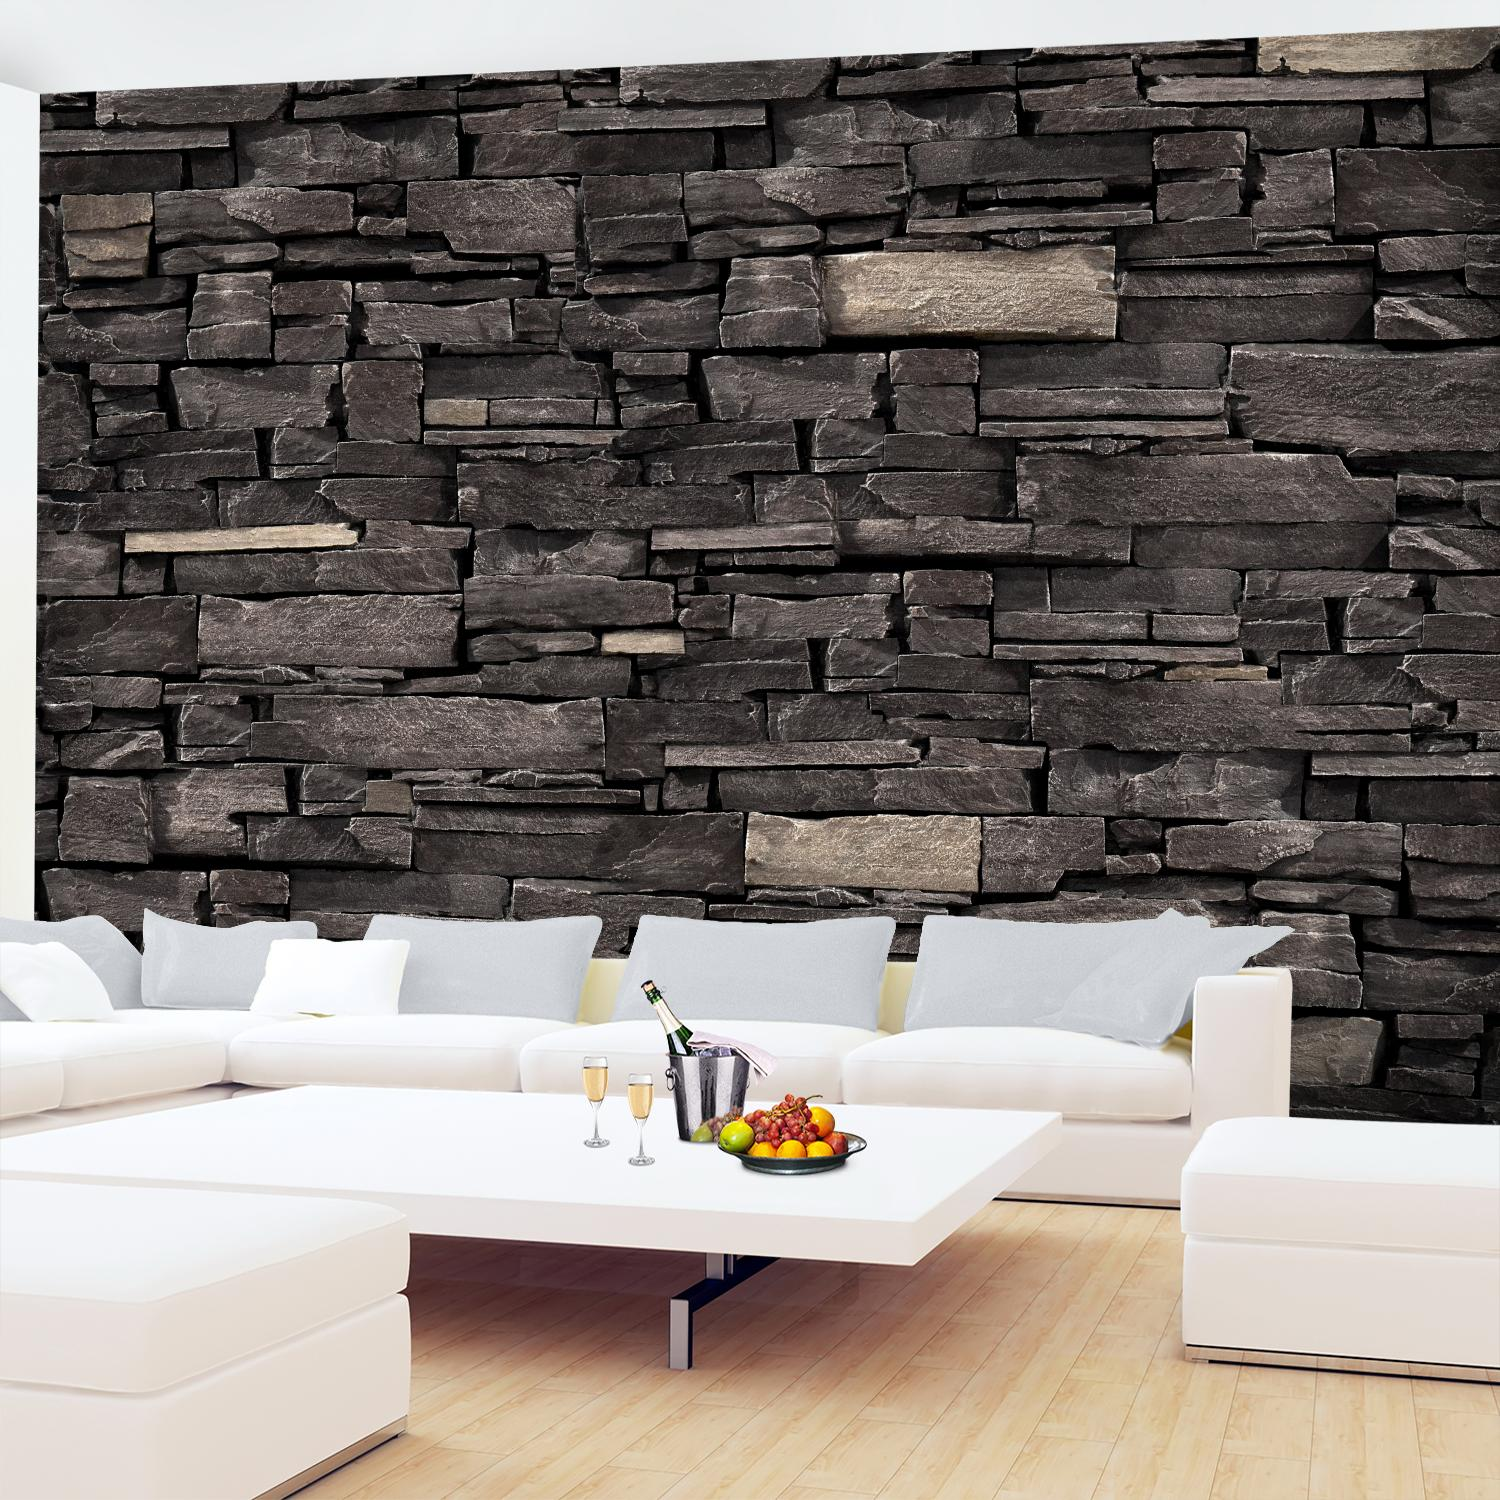 steinwand vlies foto wandtapete xxl dekoration runa 9107cp. Black Bedroom Furniture Sets. Home Design Ideas